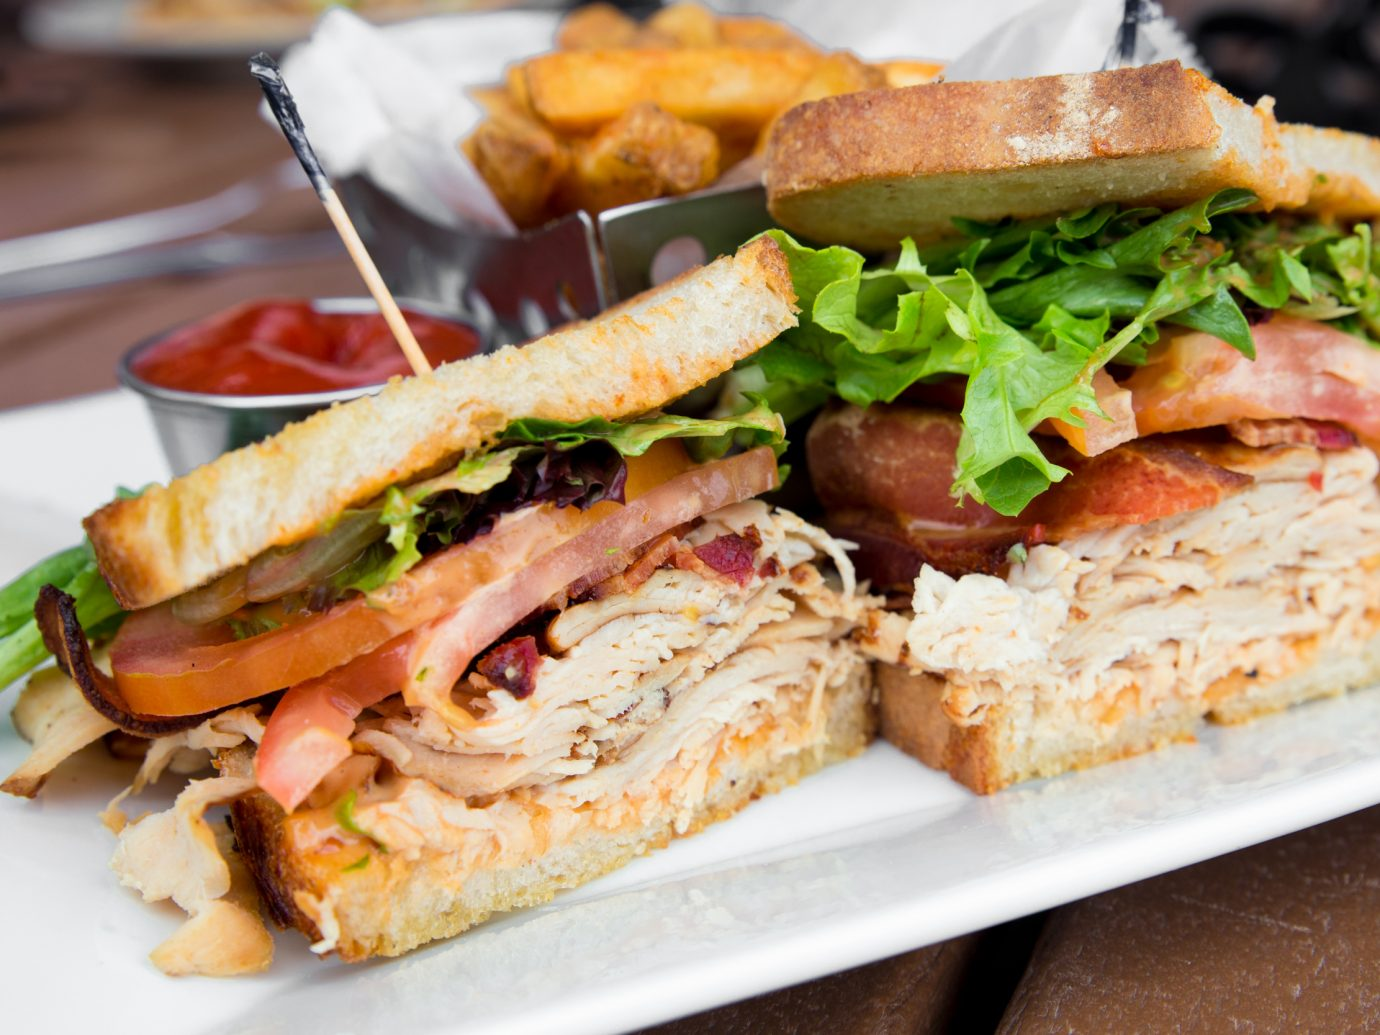 Delicious turkey club sandwich on toast with bacon, lettuce and tomato.